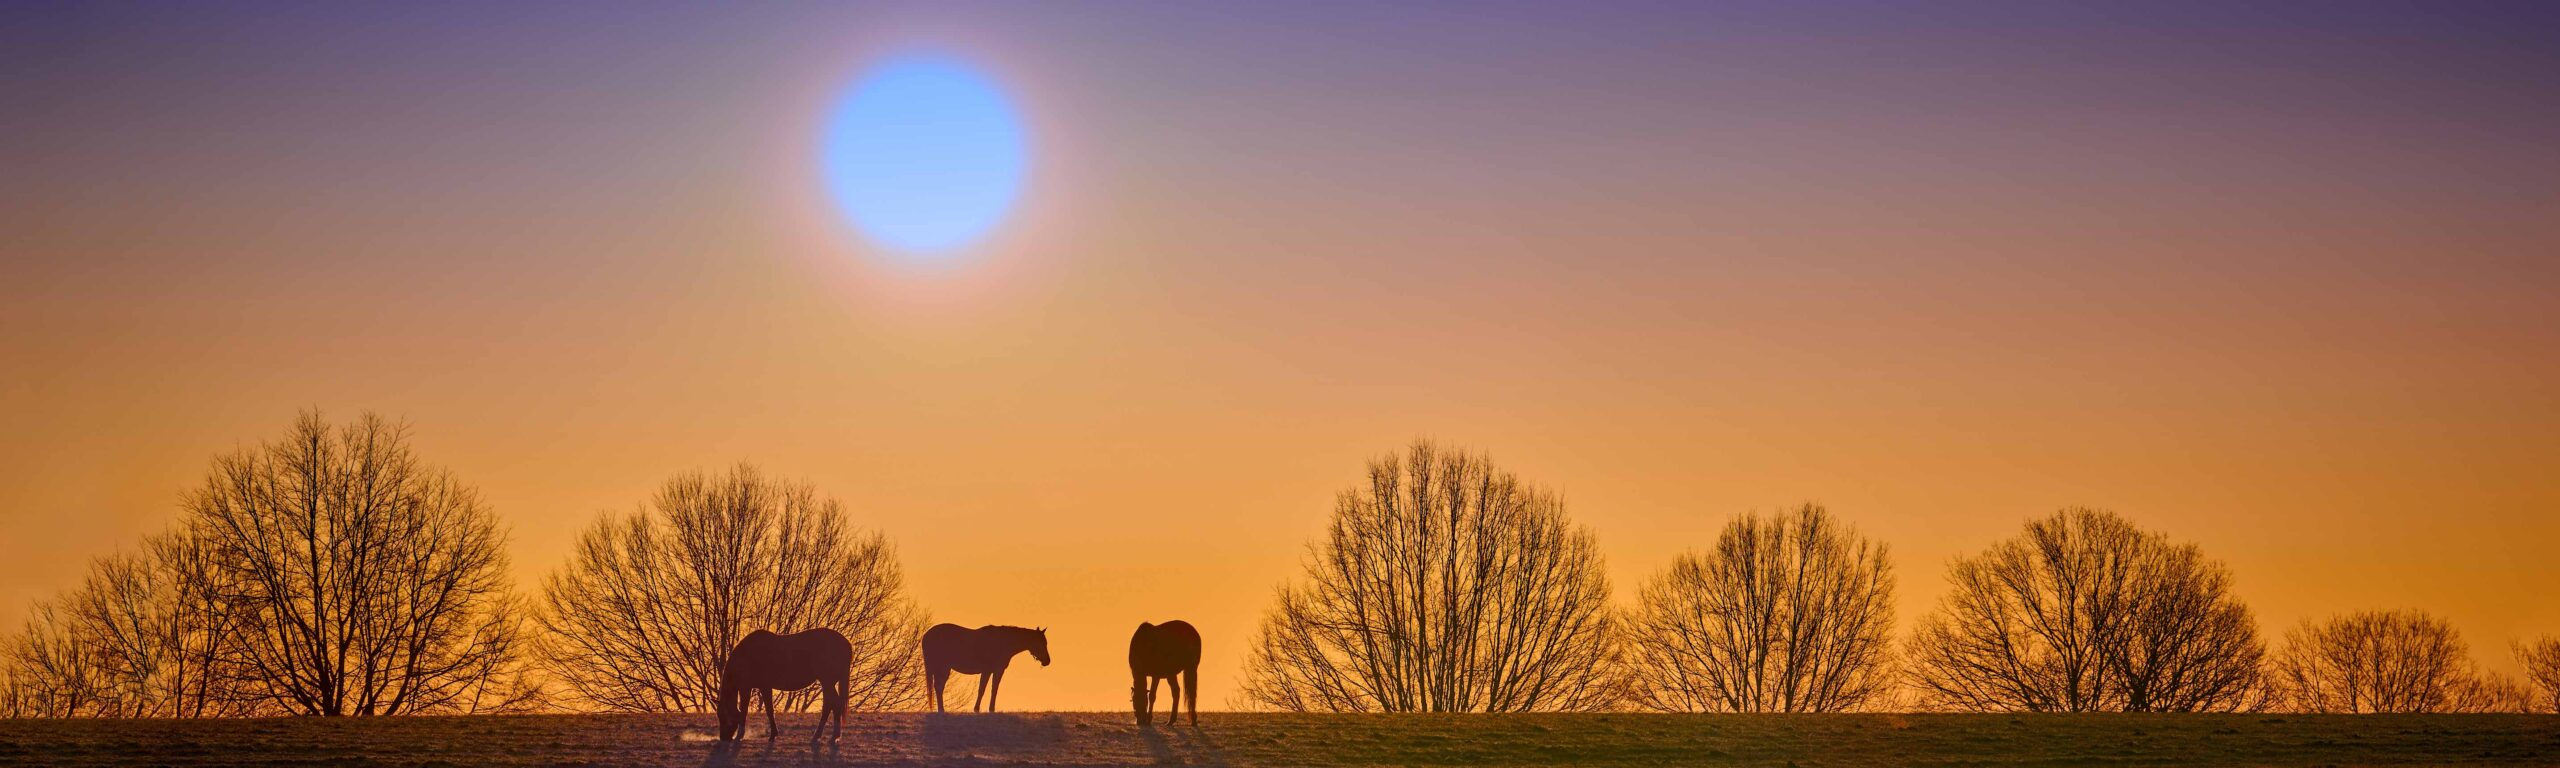 Thoroughbreds on a hill at sunset.